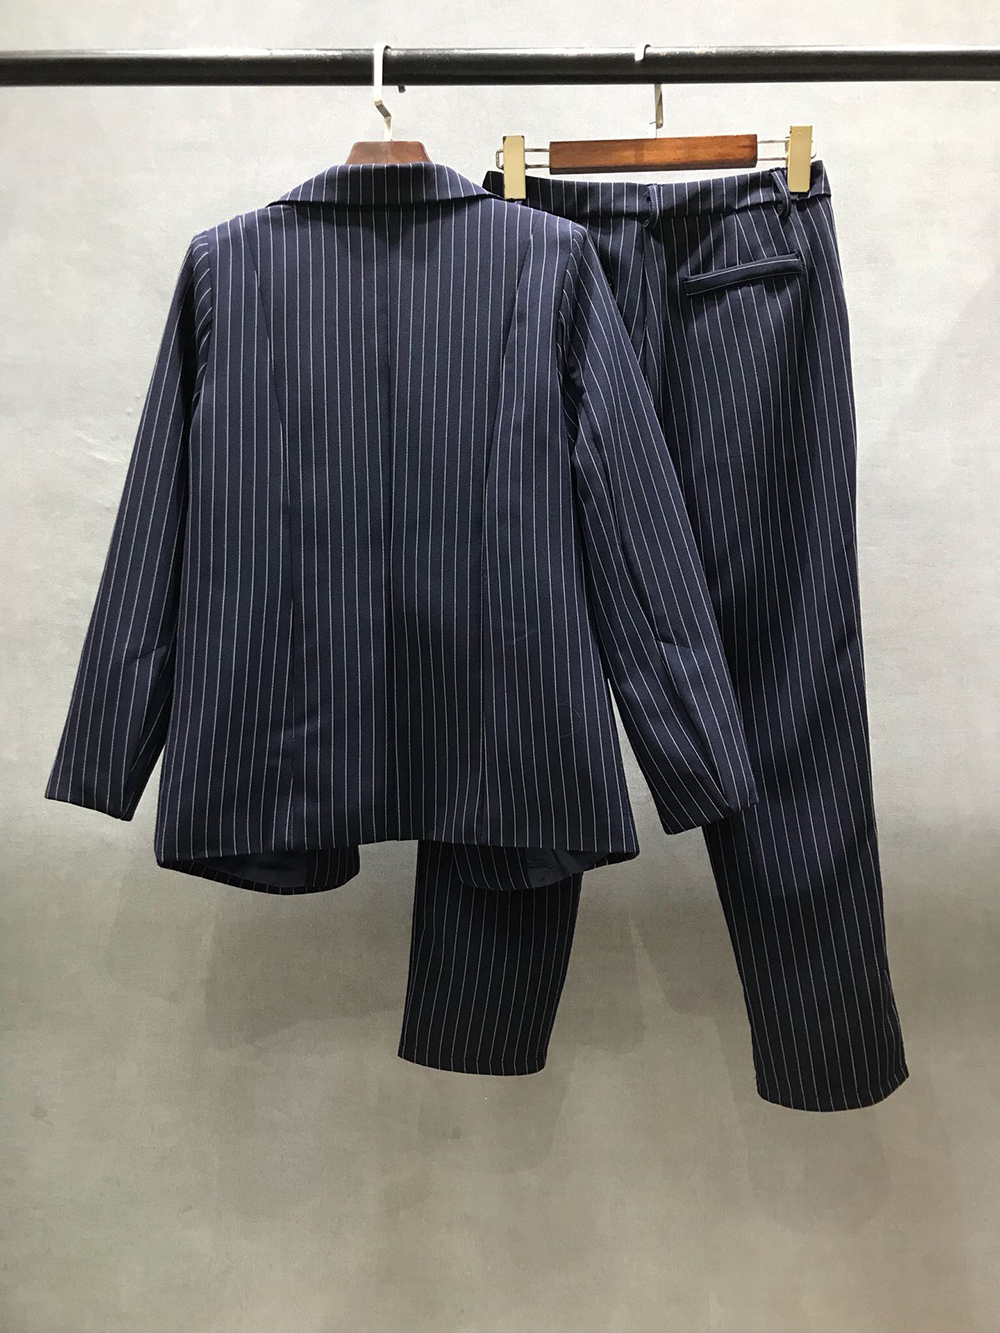 2020 High Fashion Women Elegant Striped Blazers and Pants Suit Three-piece Sets